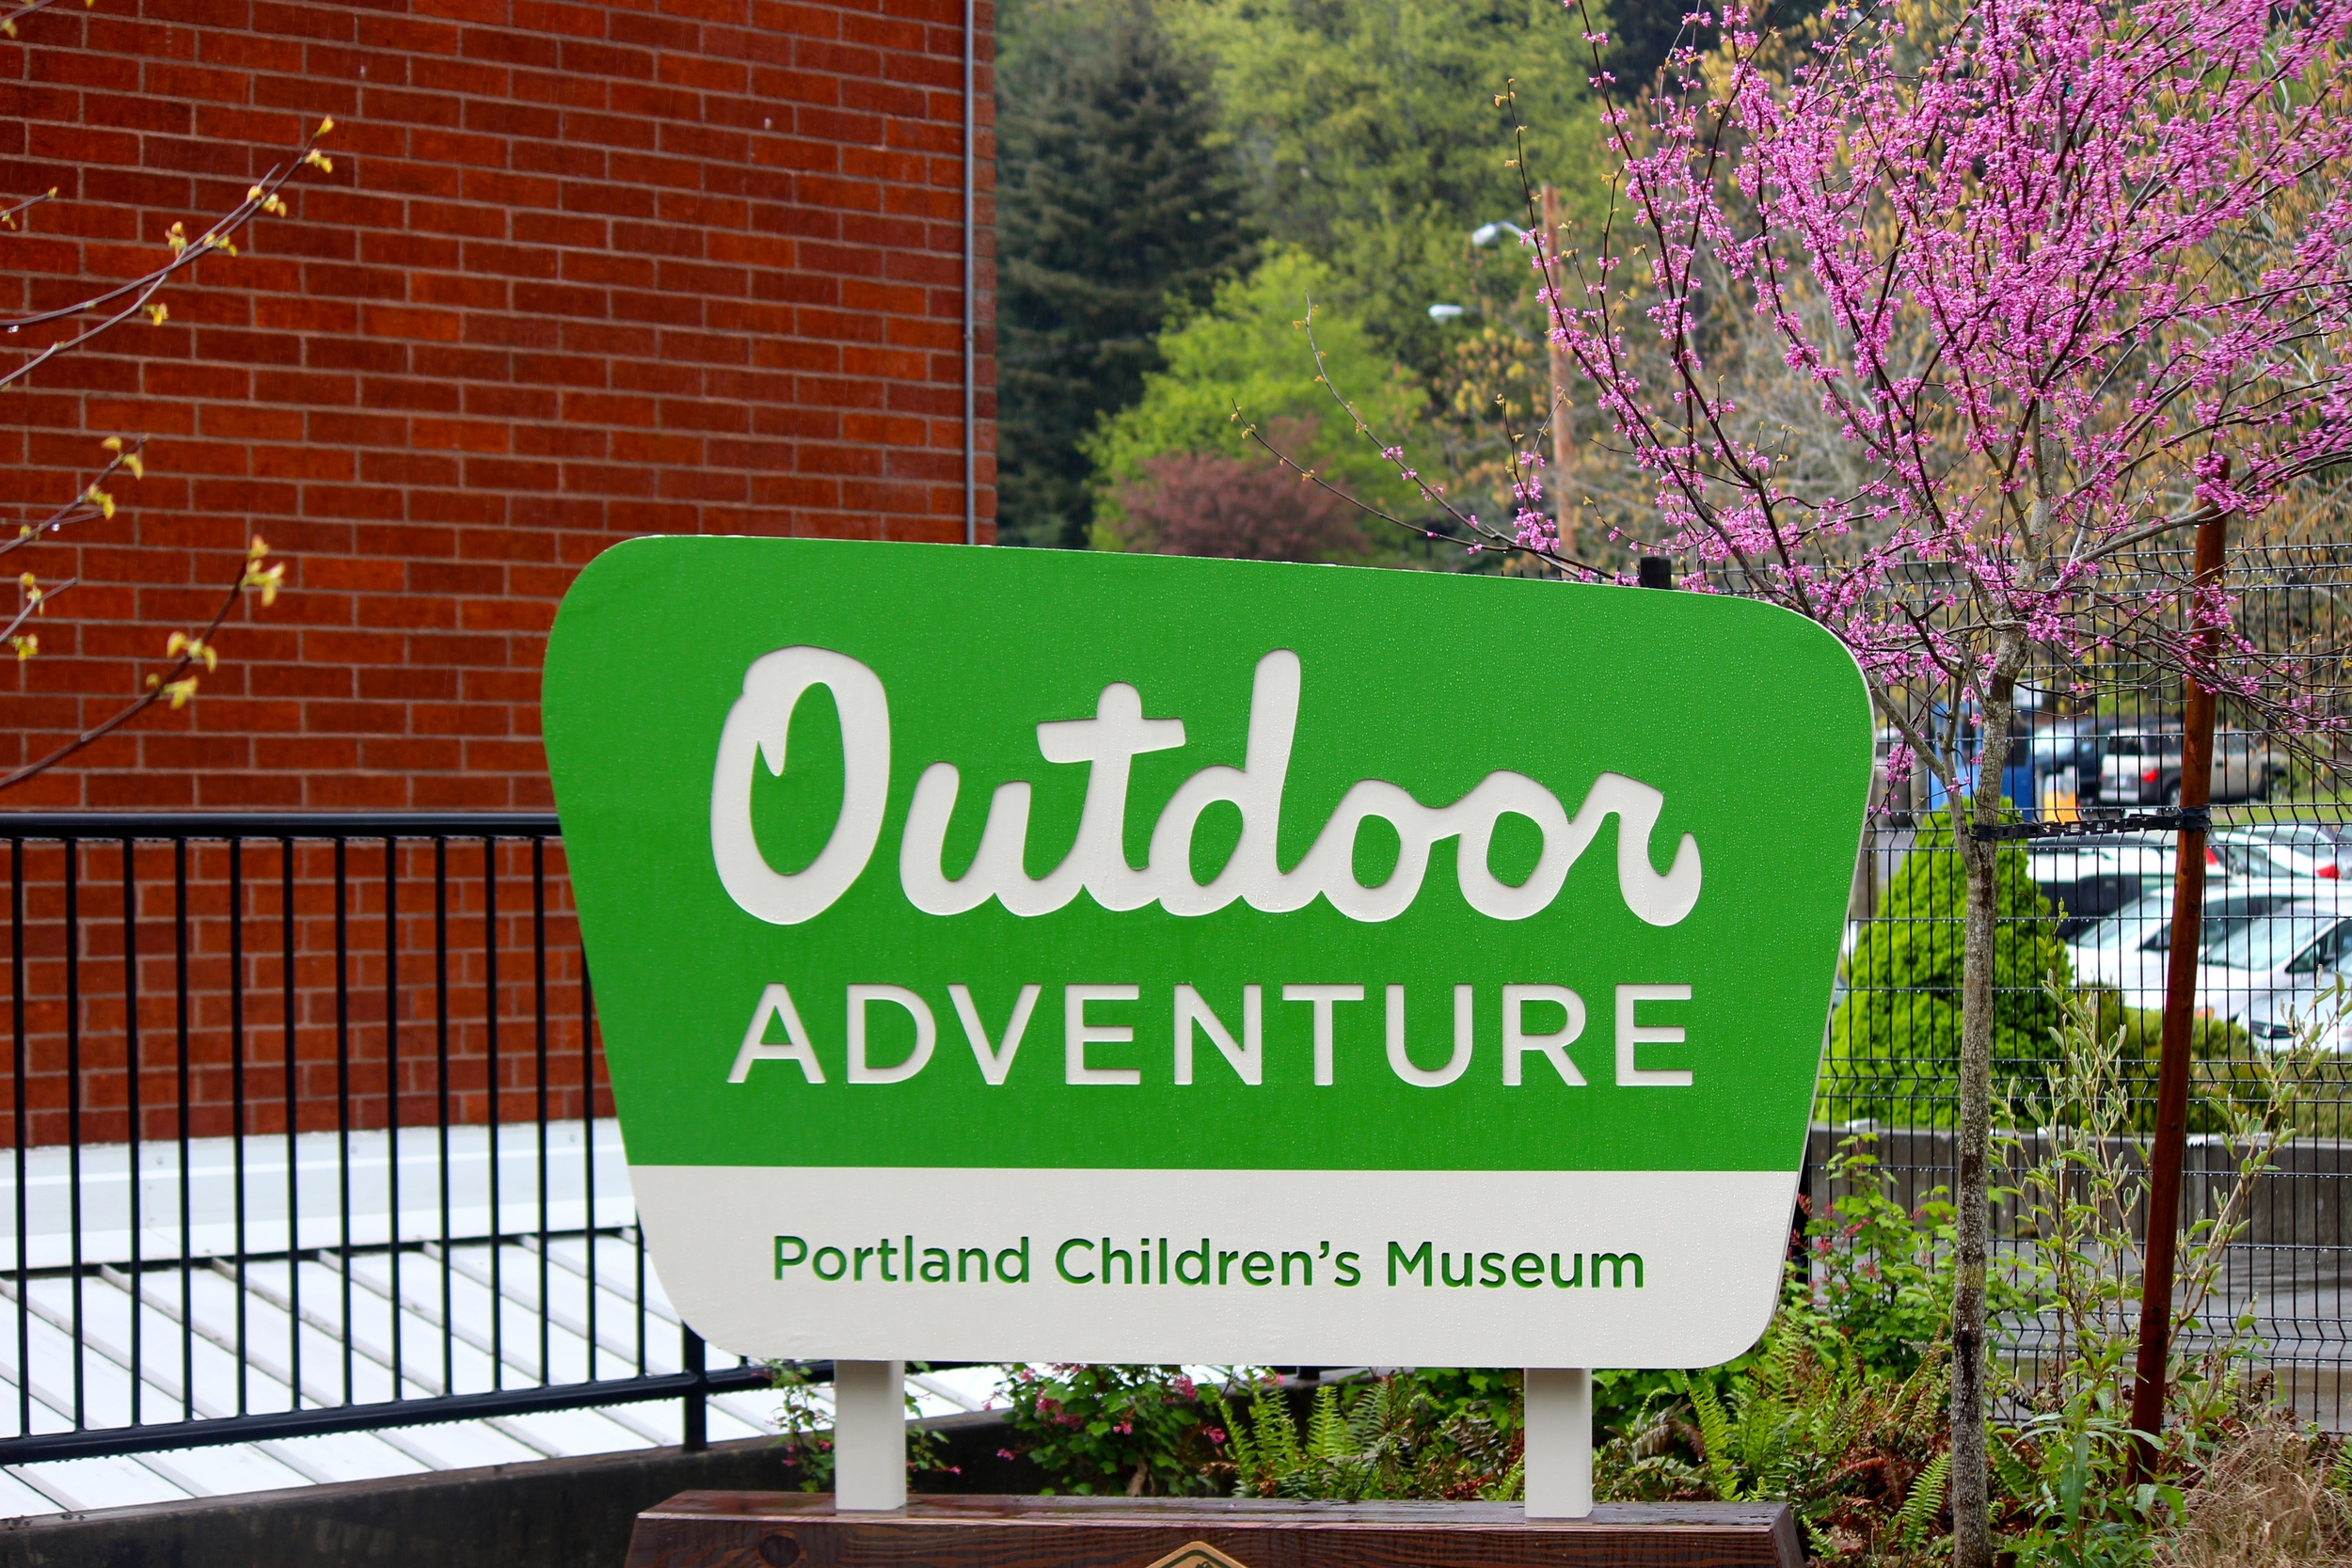 Signage for the newly opened  Outdoor Adventure  area at  Portland Children's Museum